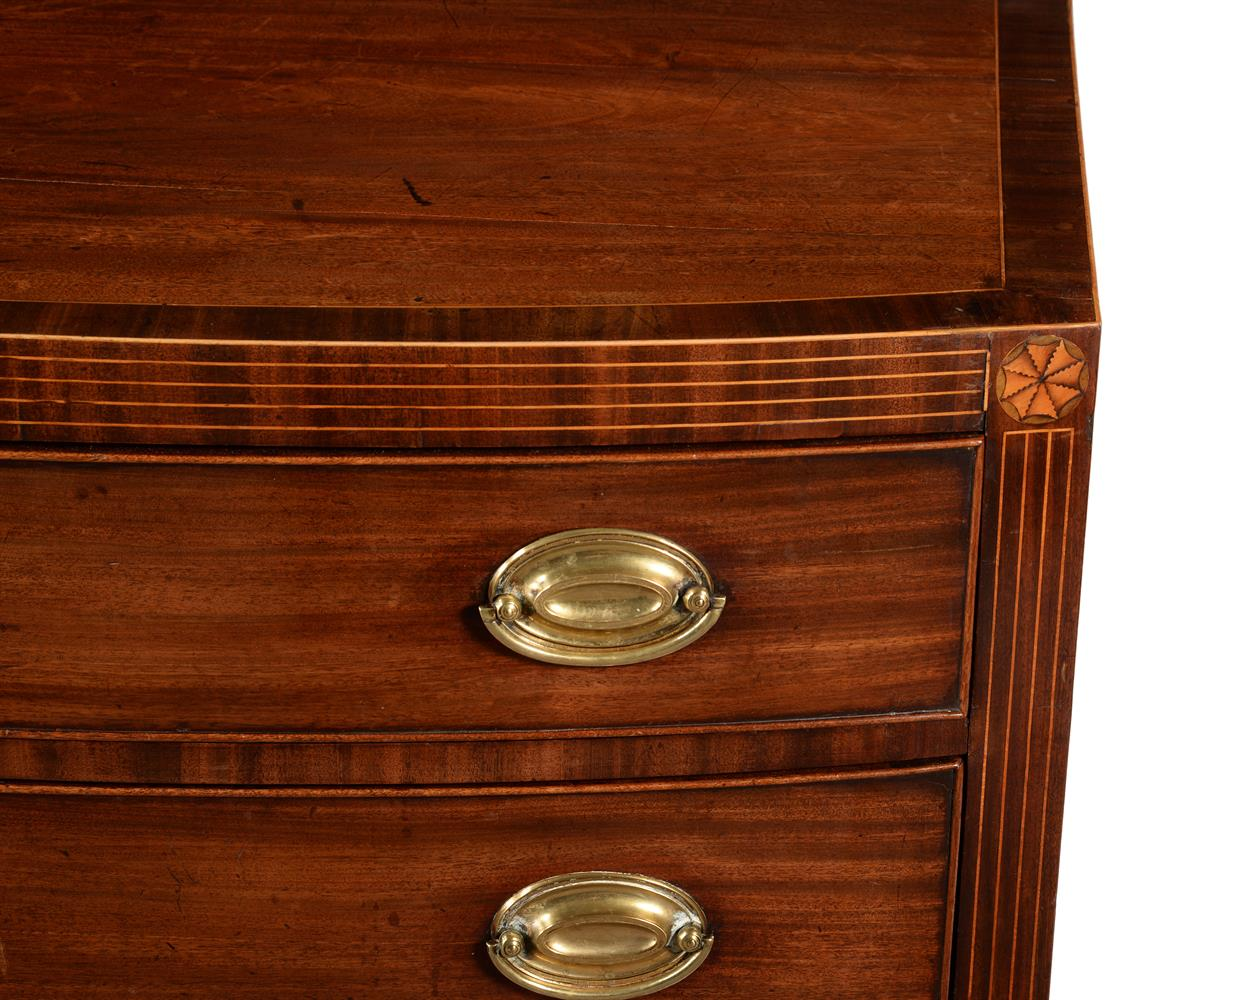 A George III mahogany bowfront chest of drawers - Image 2 of 2